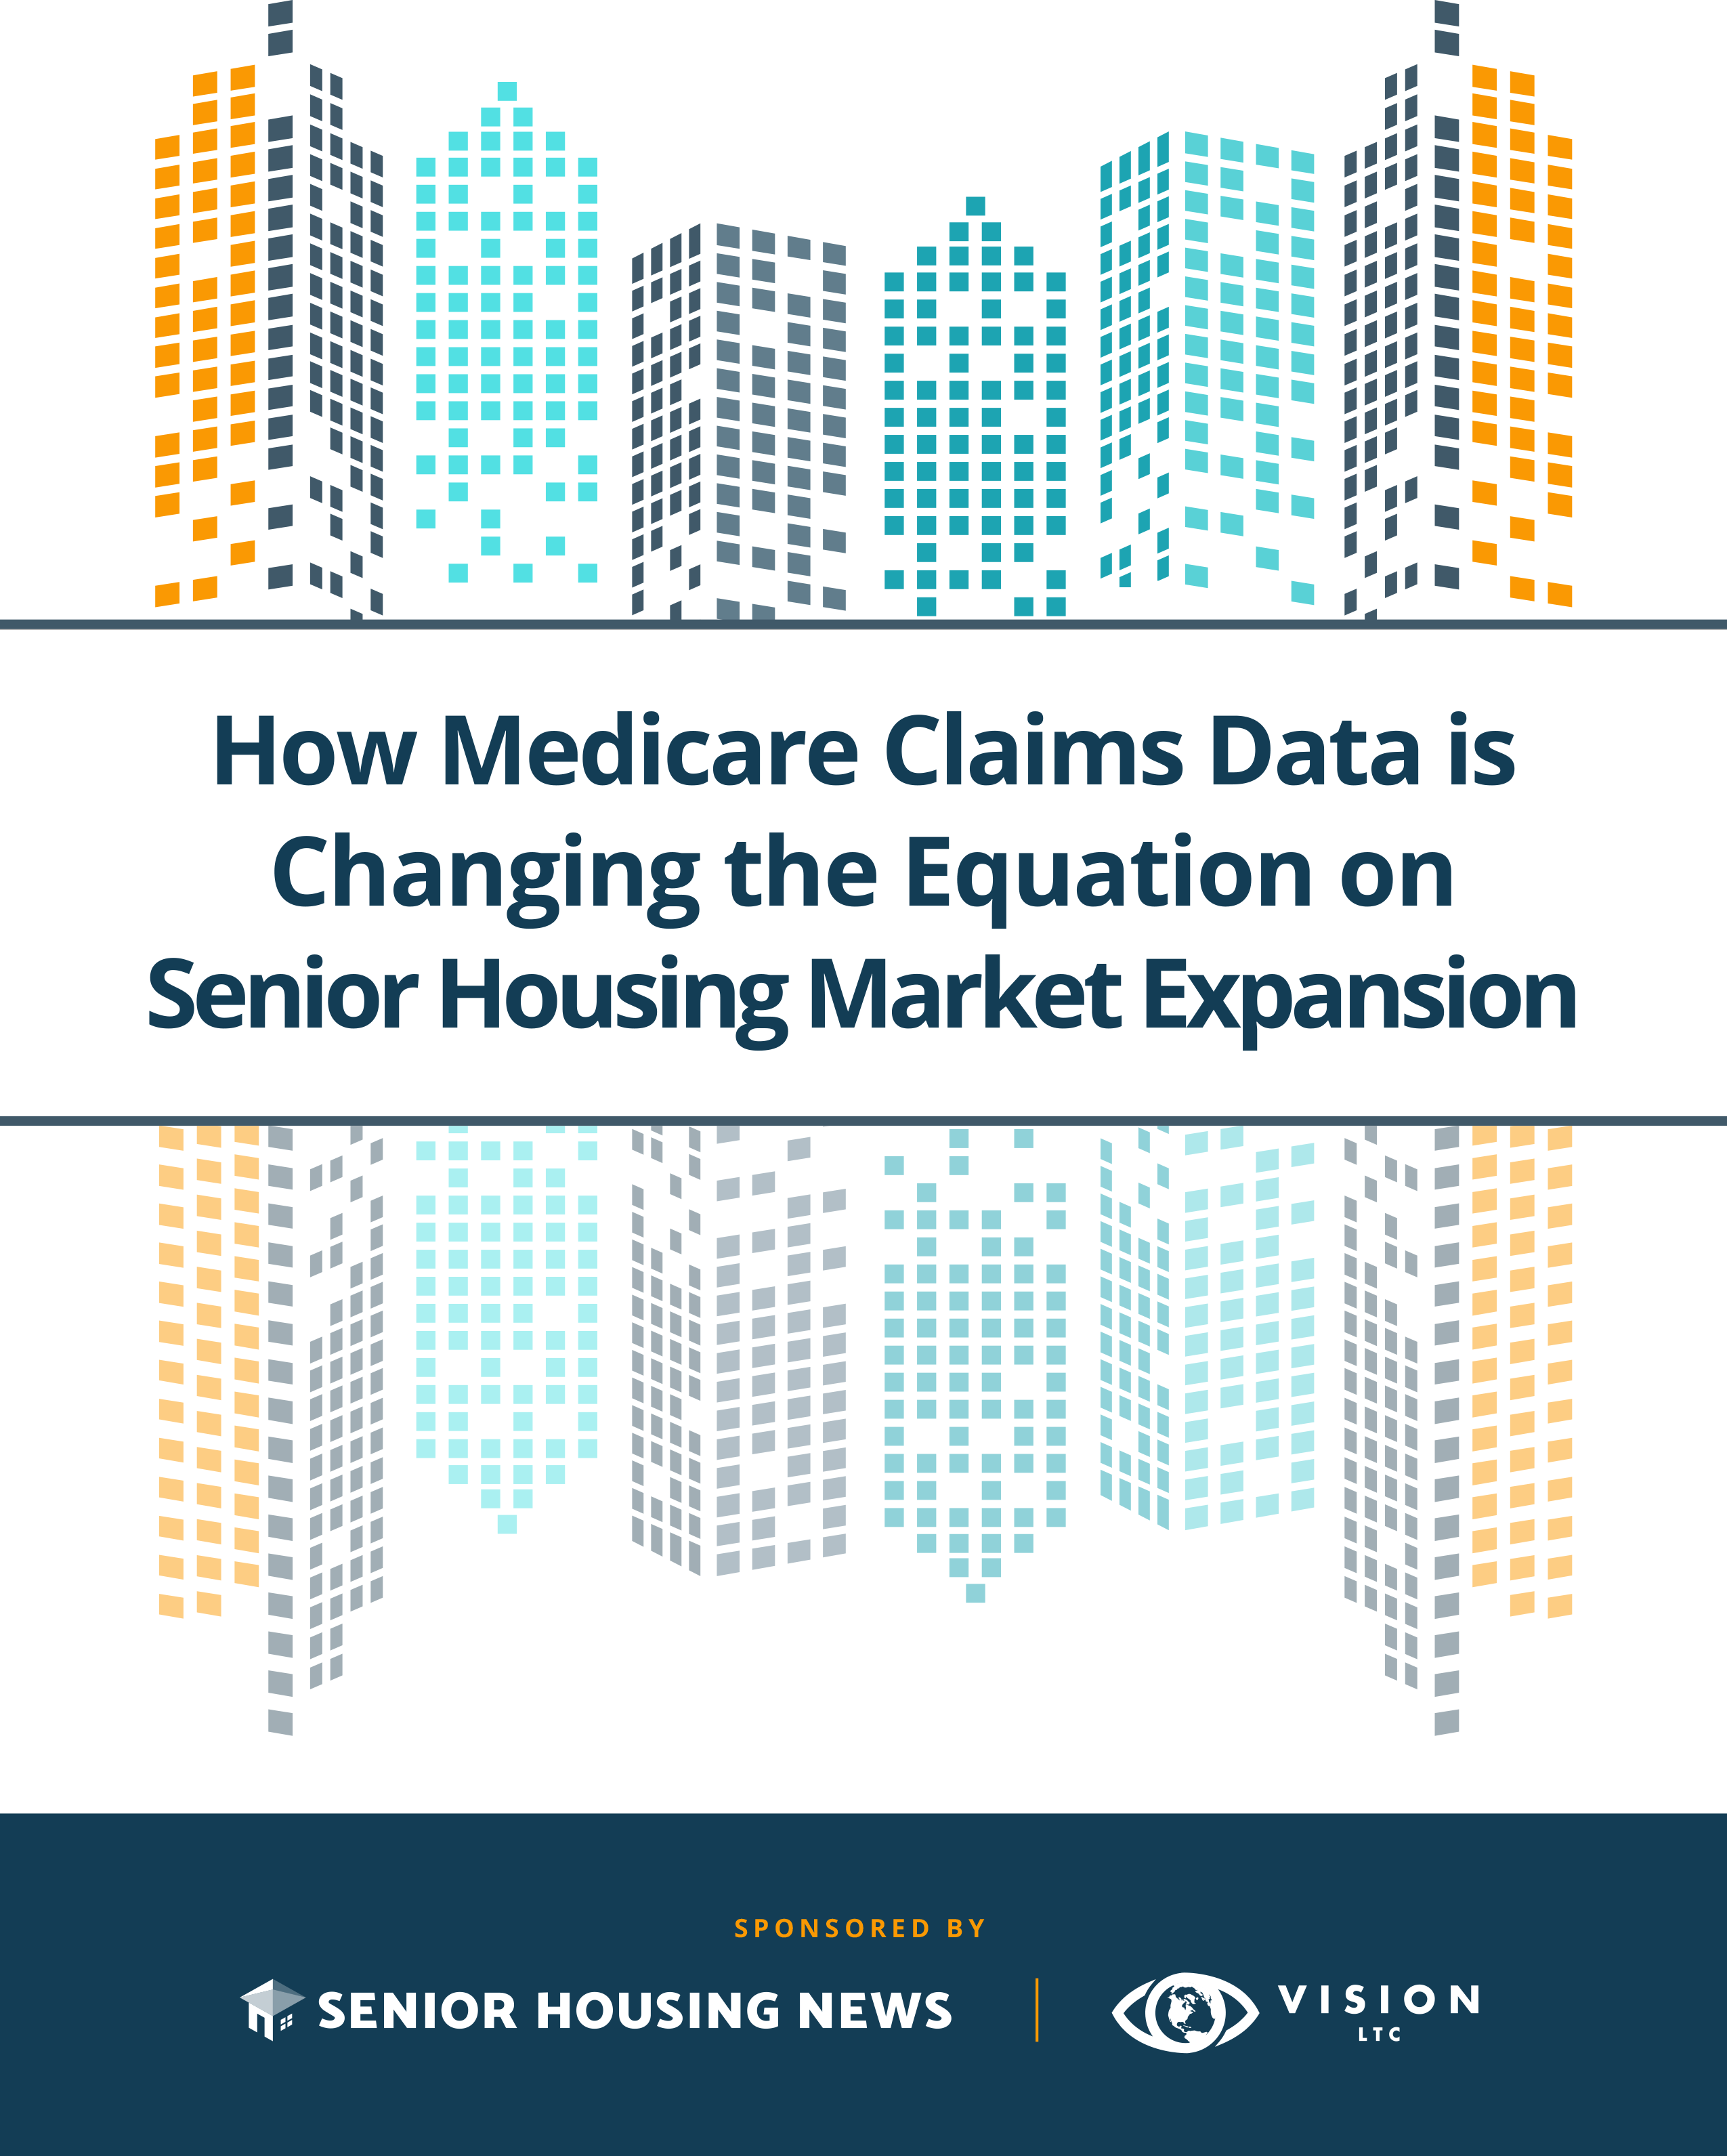 How Medicare Claims Data is Changing the Equation on Senior Housing Market Expansion